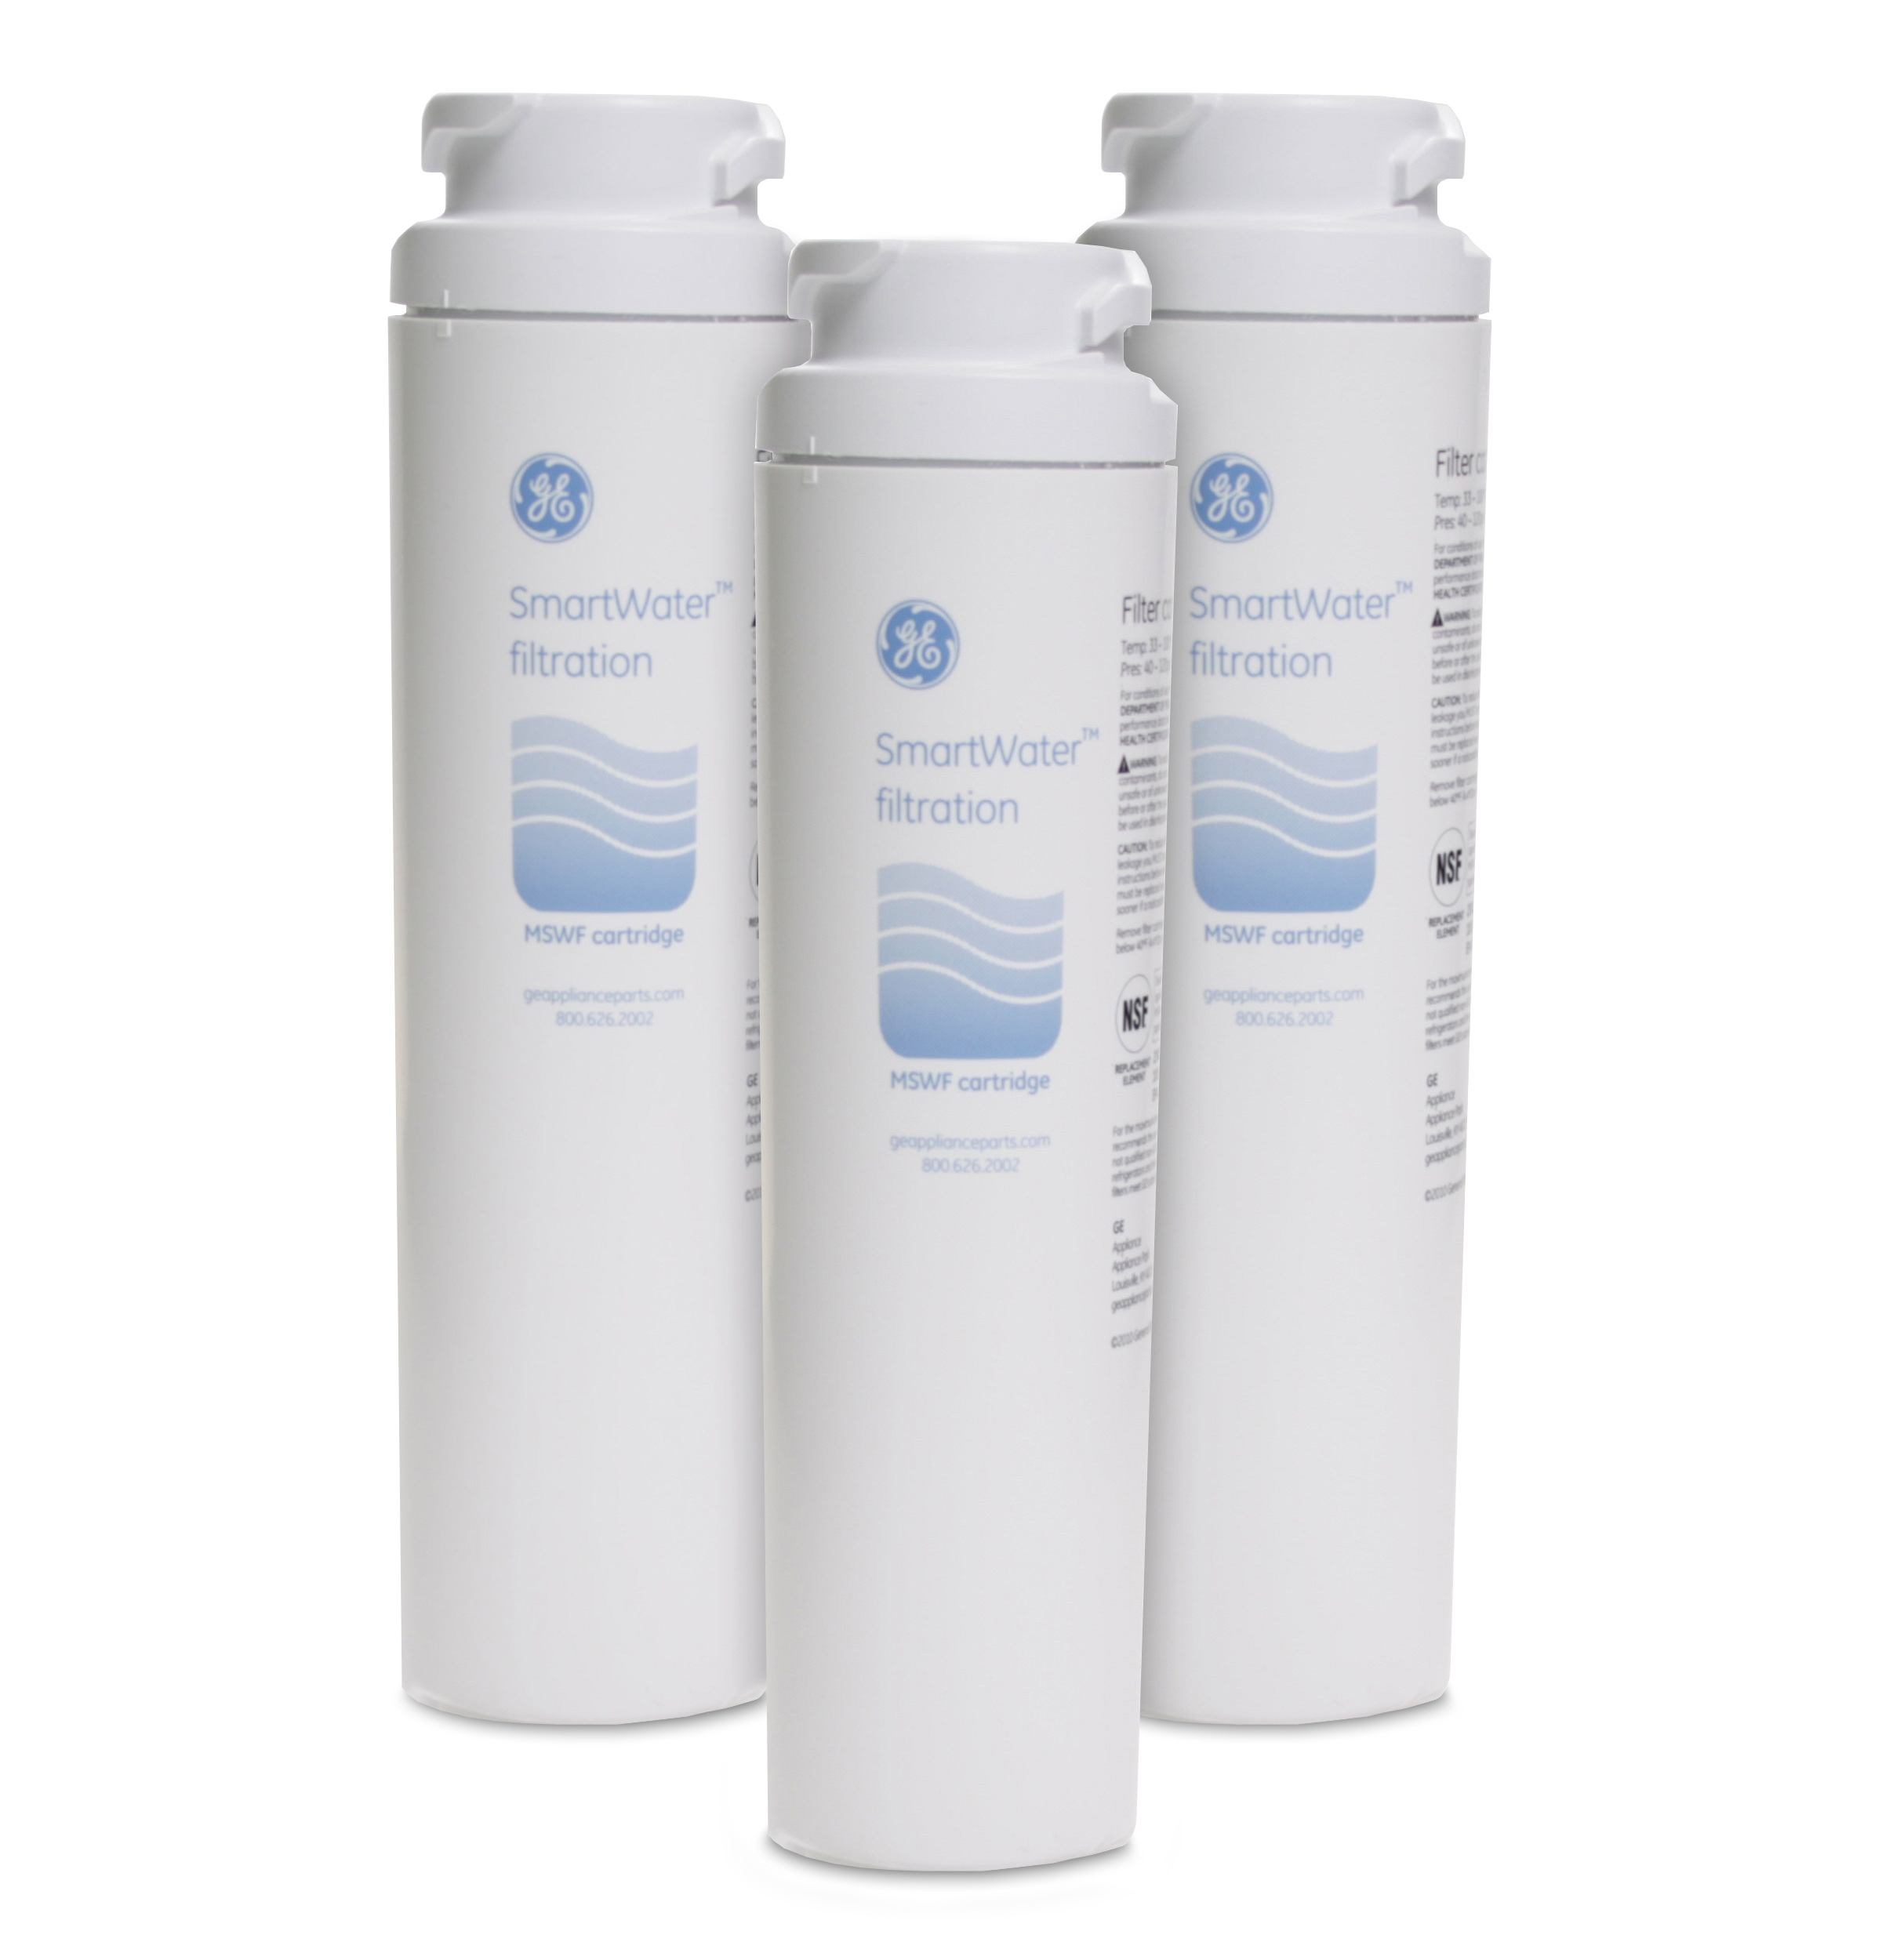 How To Replace Ge Water Filter Mswf3pk Gear Mswf3pk Refrigerator Water Filter 3 Pack Ge Parts